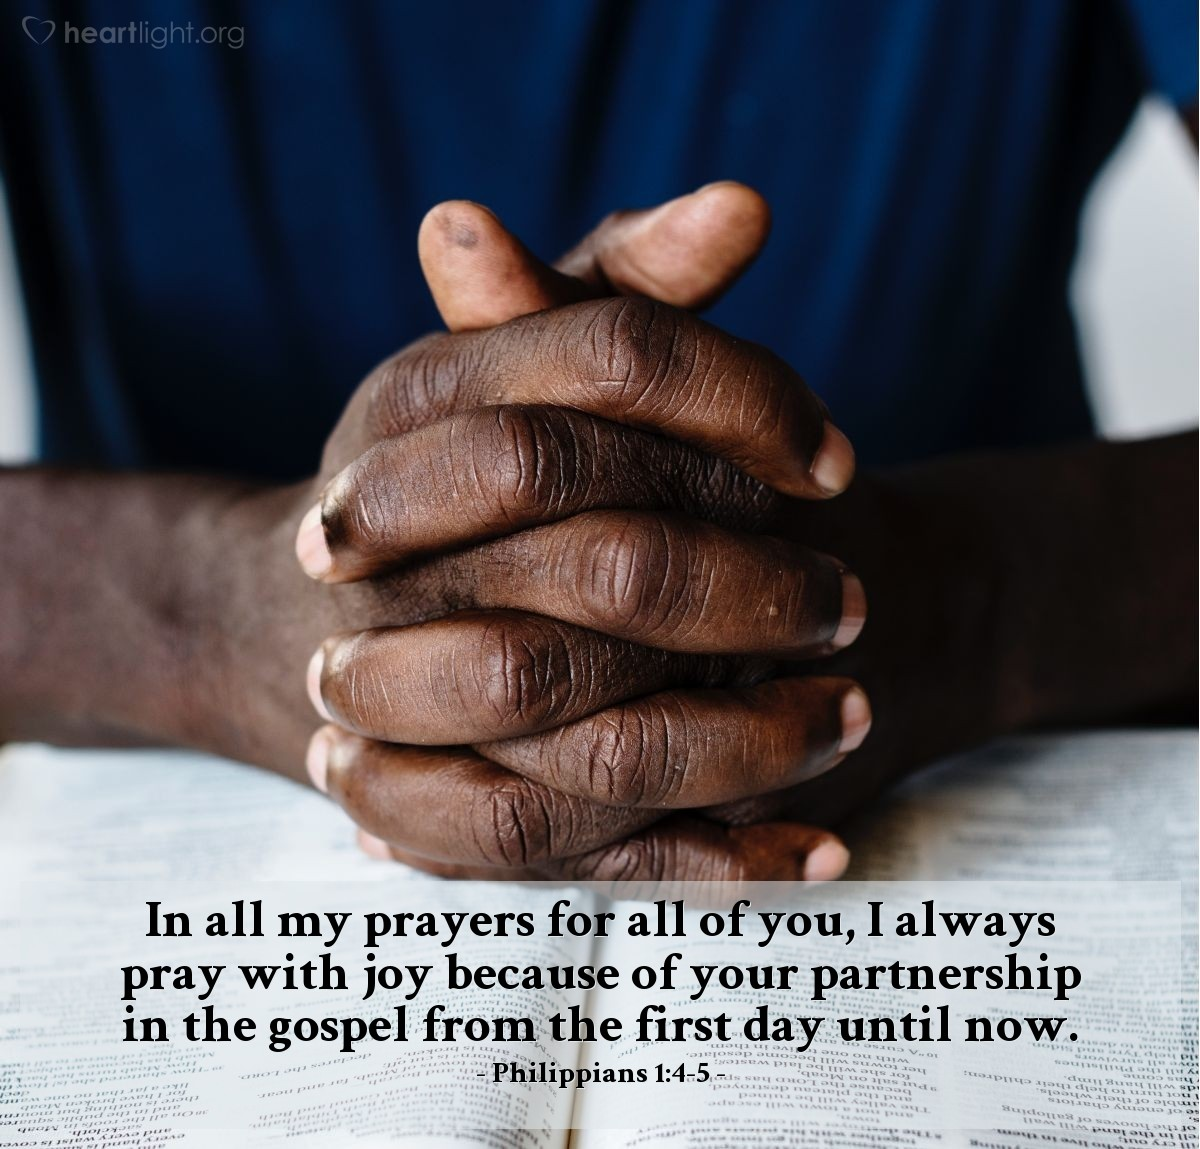 Illustration of Philippians 1:4-5 — In all my prayers for all of you, I always pray with joy because of your partnership in the gospel from the first day until now.